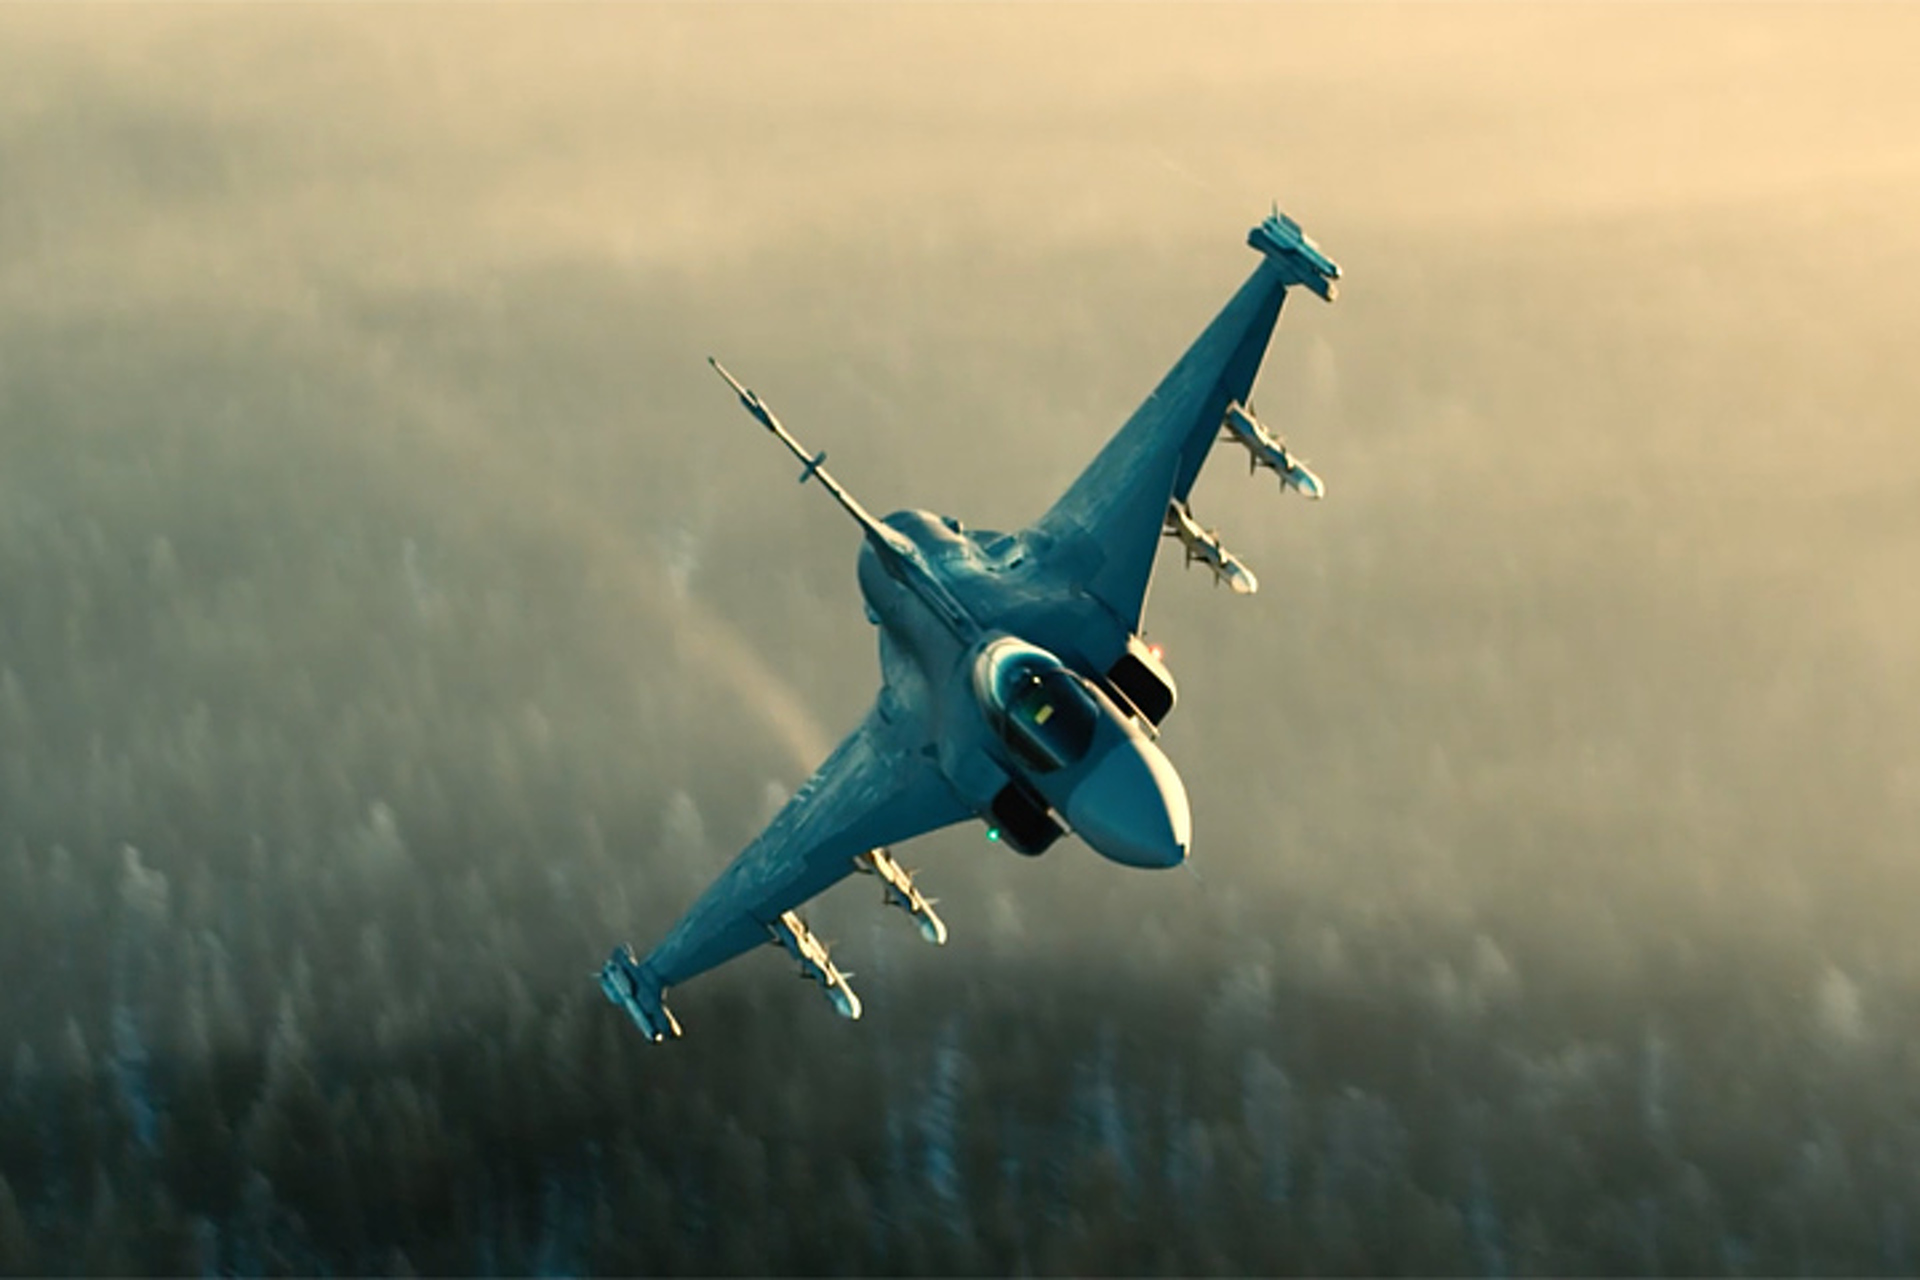 You've Never Seen a Saab Fighter Jet Quite Like This Before